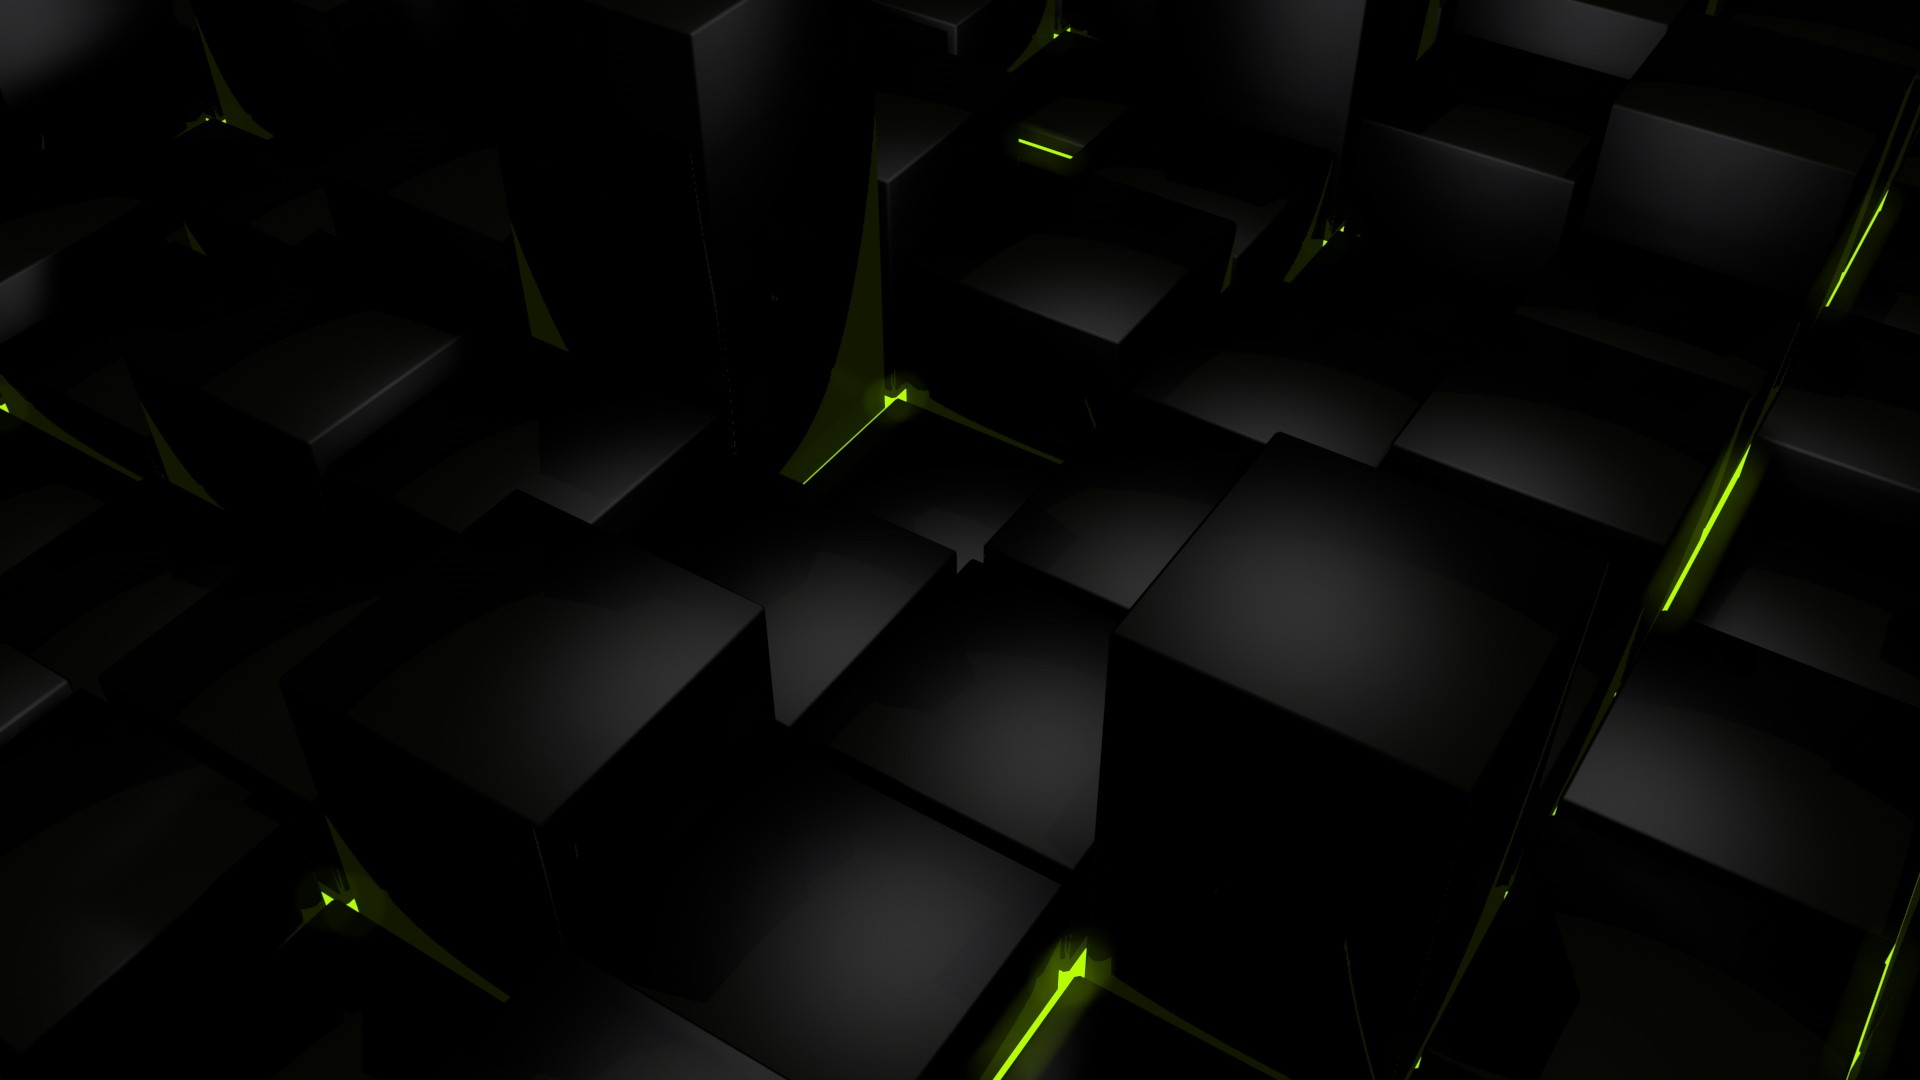 Dark cubes glow computer graphics wallpaper 1920x1080 67125 1920x1080